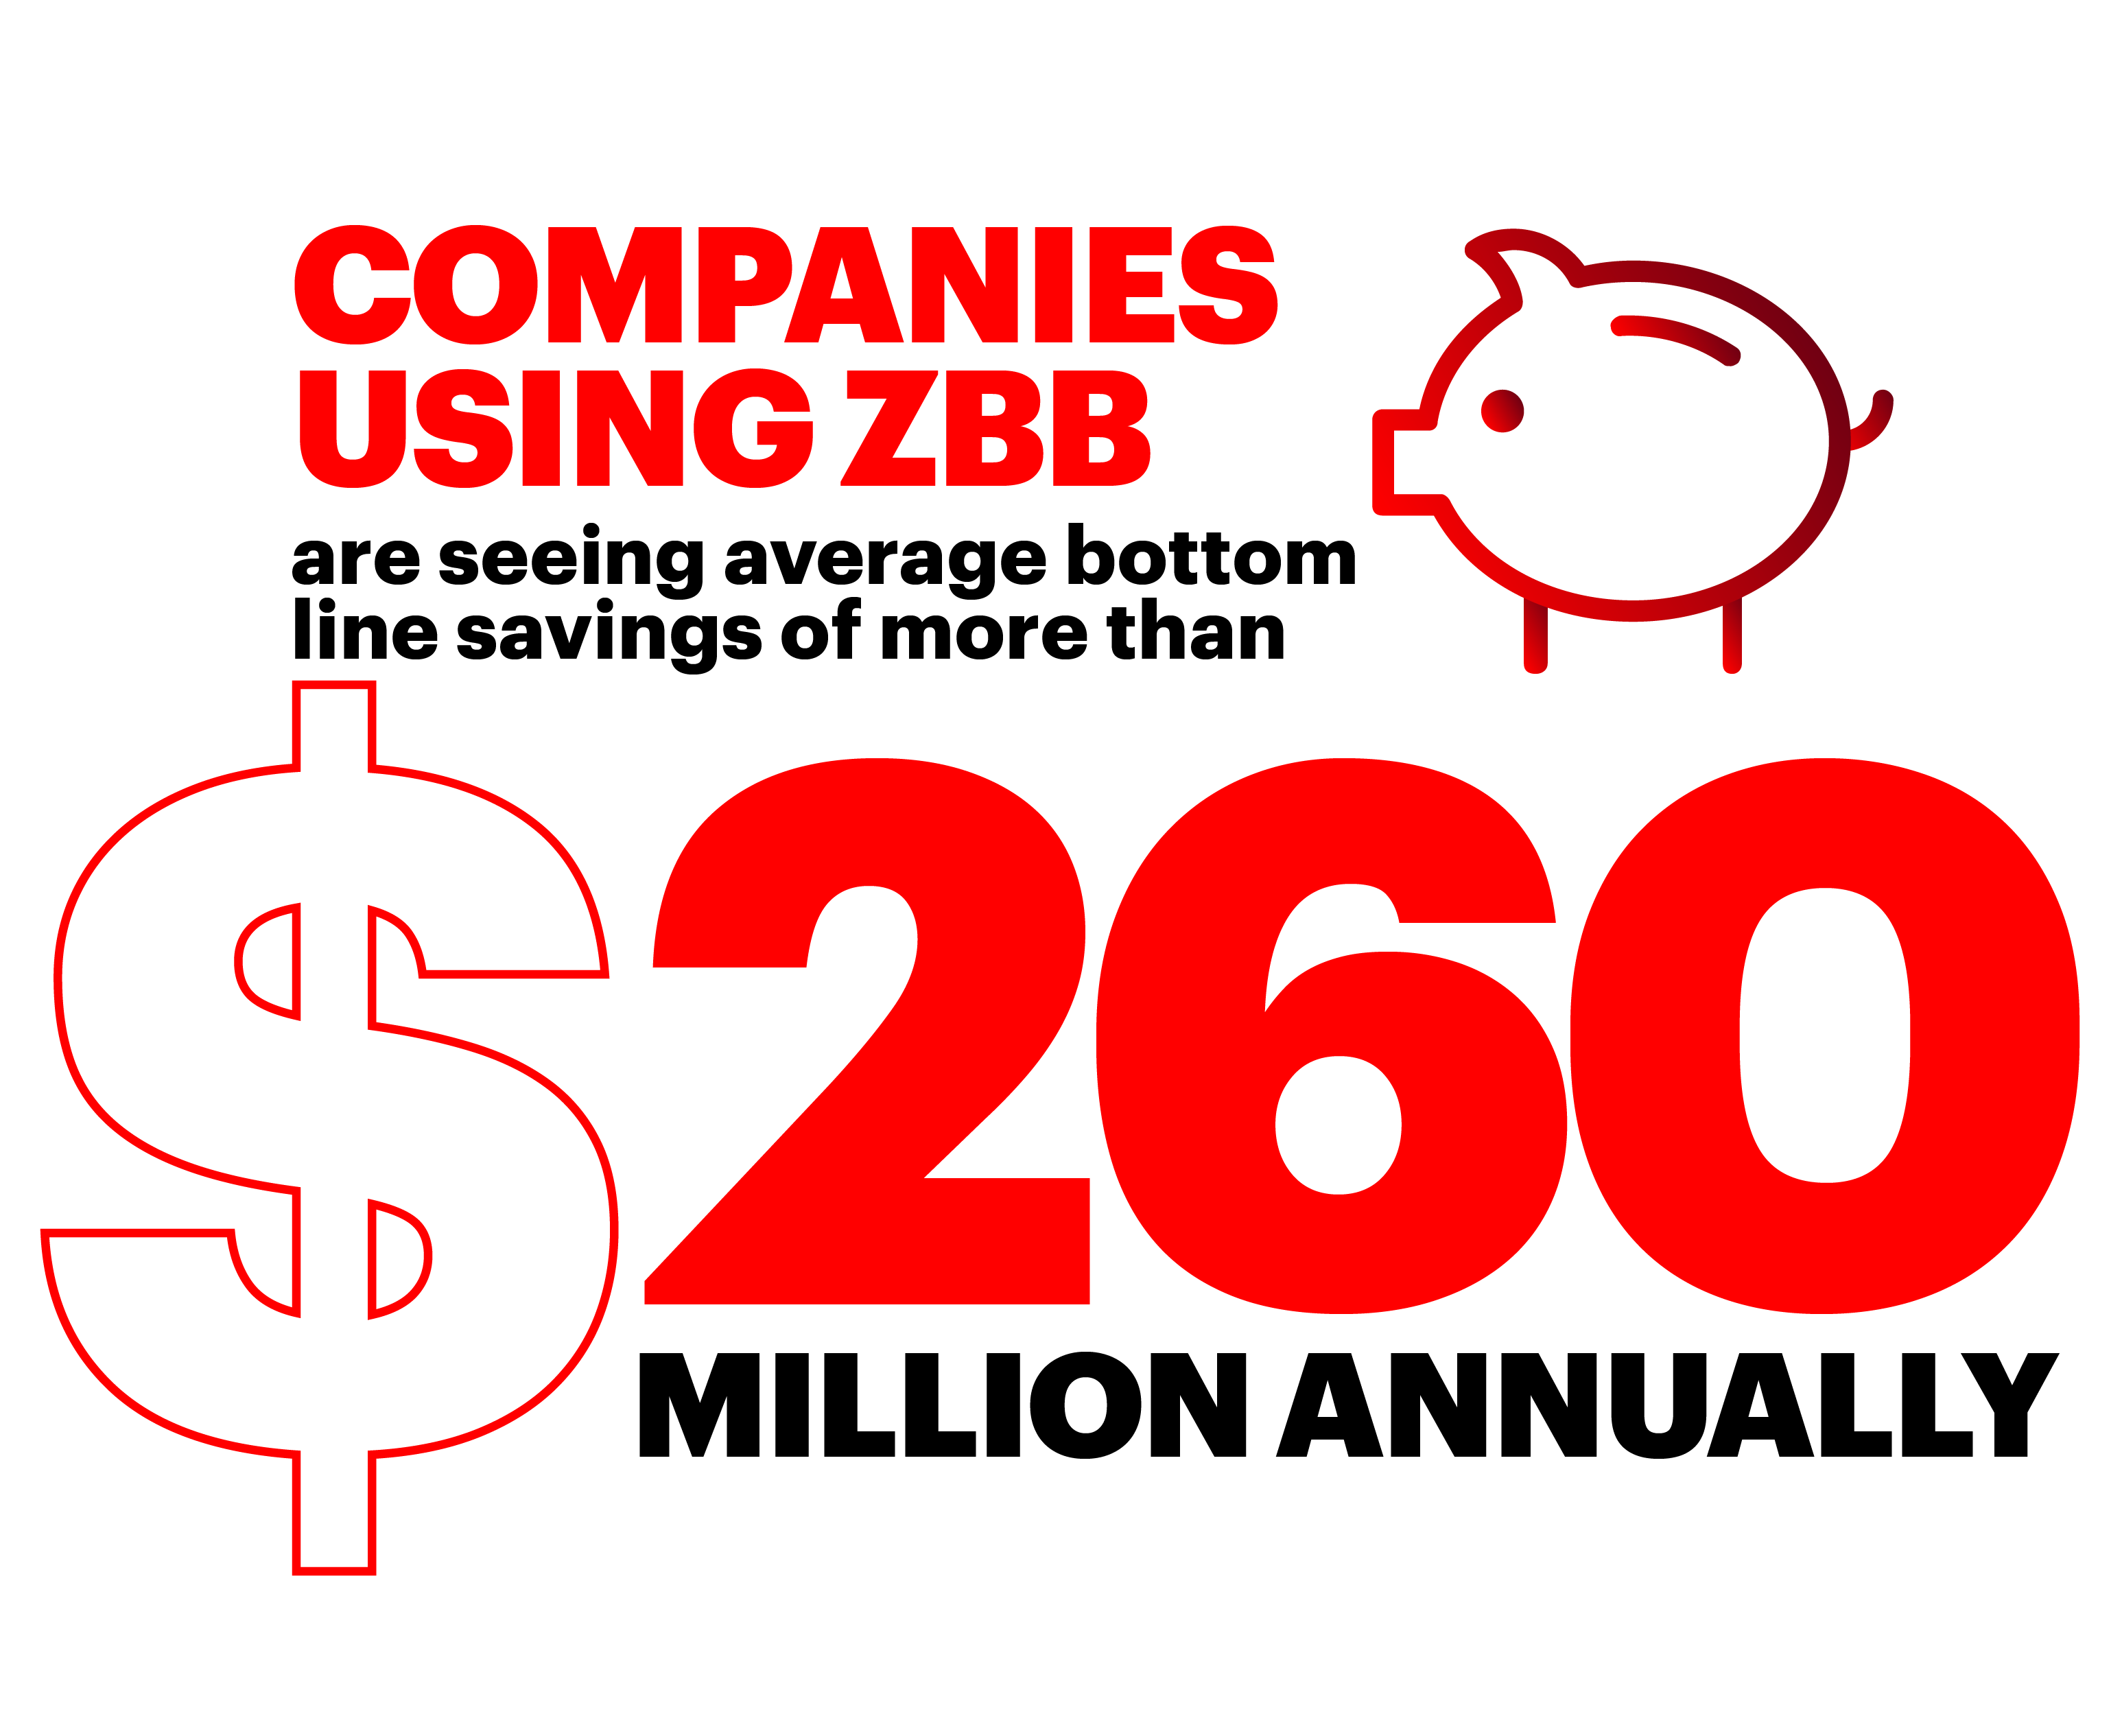 Companies using ZBB are seeing average bottom line savings of more than $260 million annually.